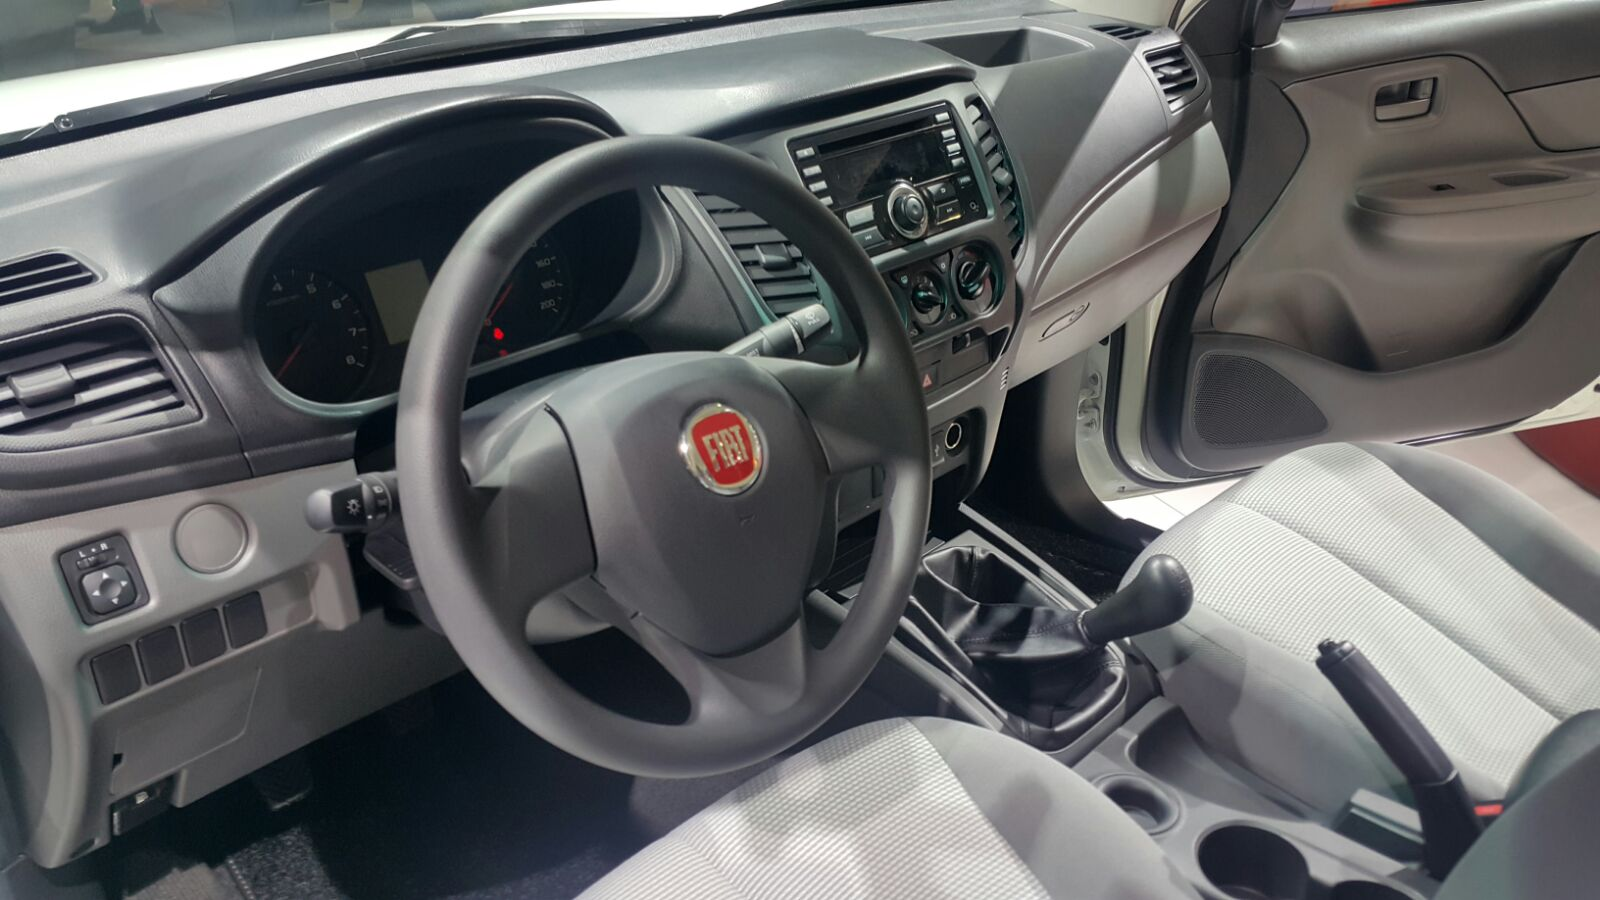 adorable-design-of-the-grey-seats-ideas-with-black-dash-ideas-with-black-steering-wheel-as-the-fiat-fullback-2016-interior